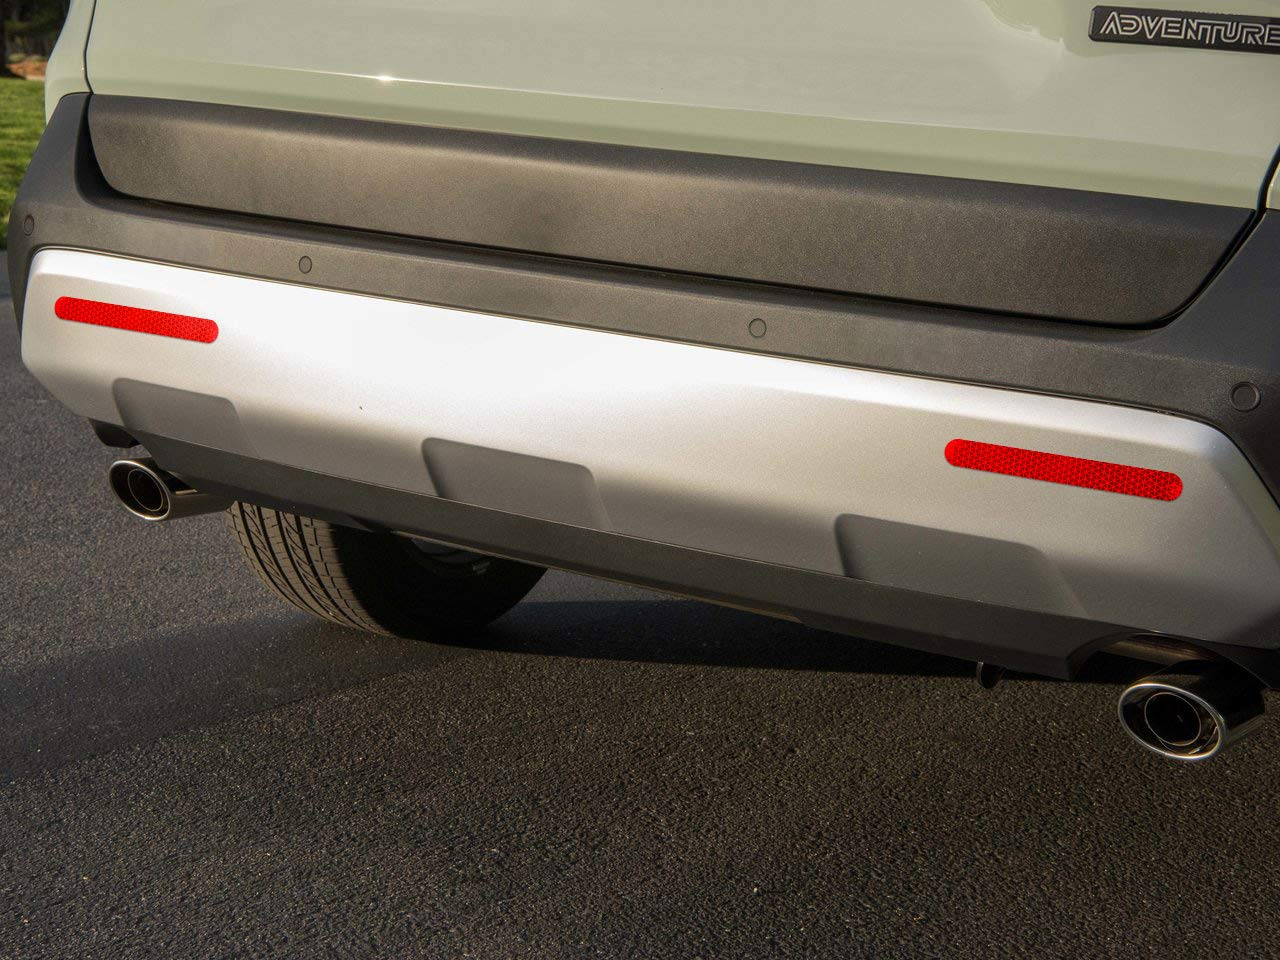 Block Bumper Reflector Self-Adhesive Ultra Reflective Safety Sticker Decal with Corrosion Resistant Aluminum Reduce Rear End Collisions with Zero Power Consumption